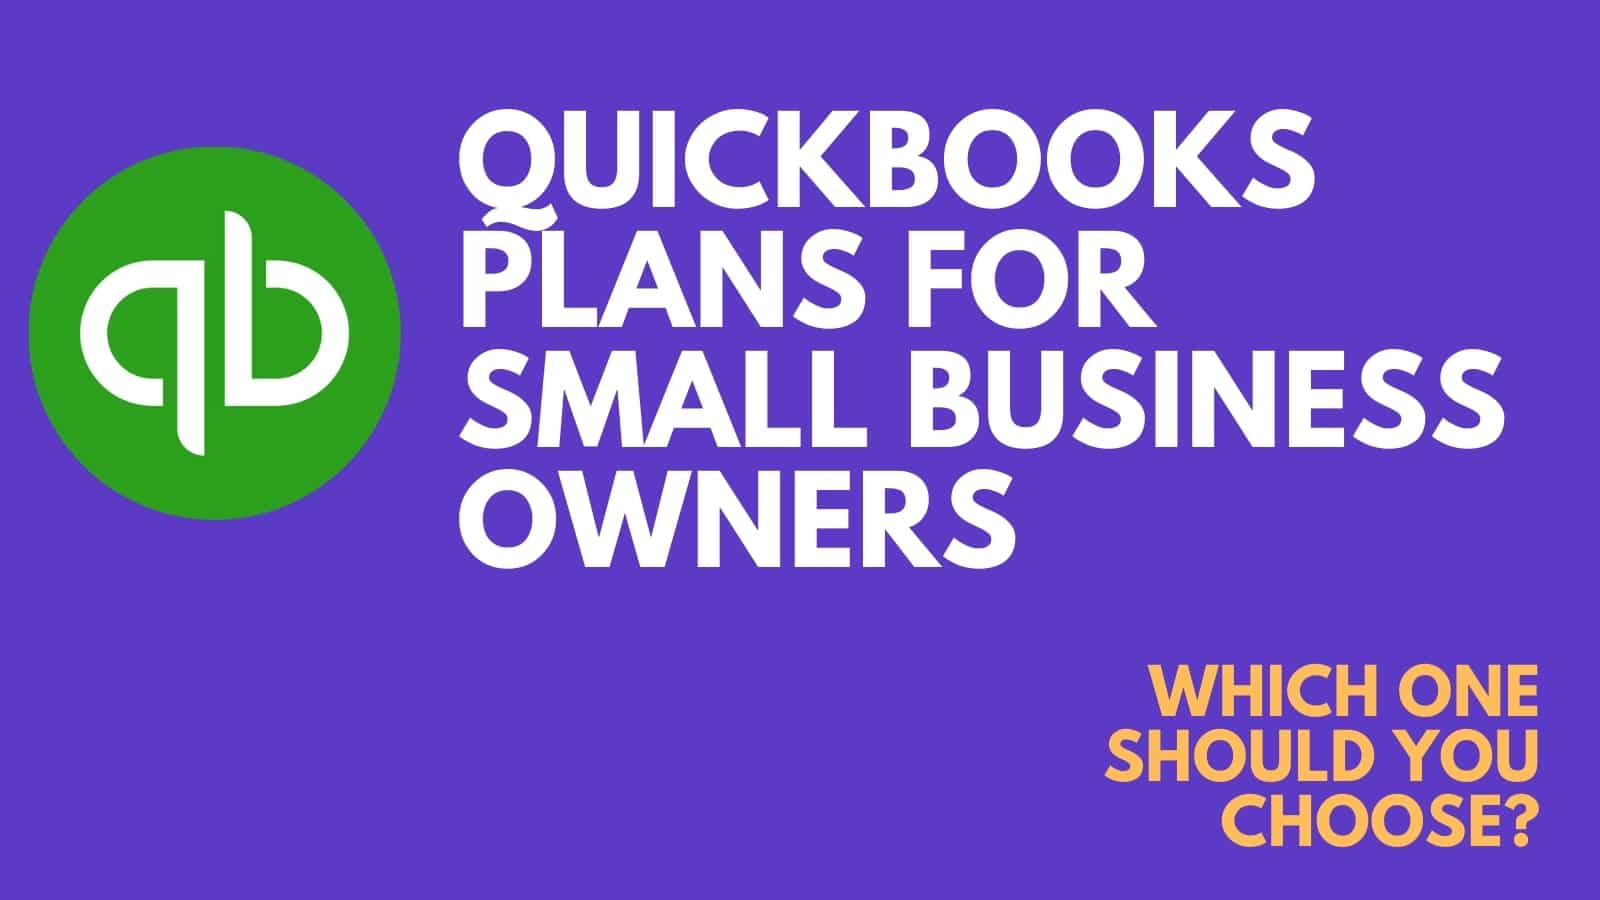 Quickbooks Self-Employed Vs. Small Business in 2021